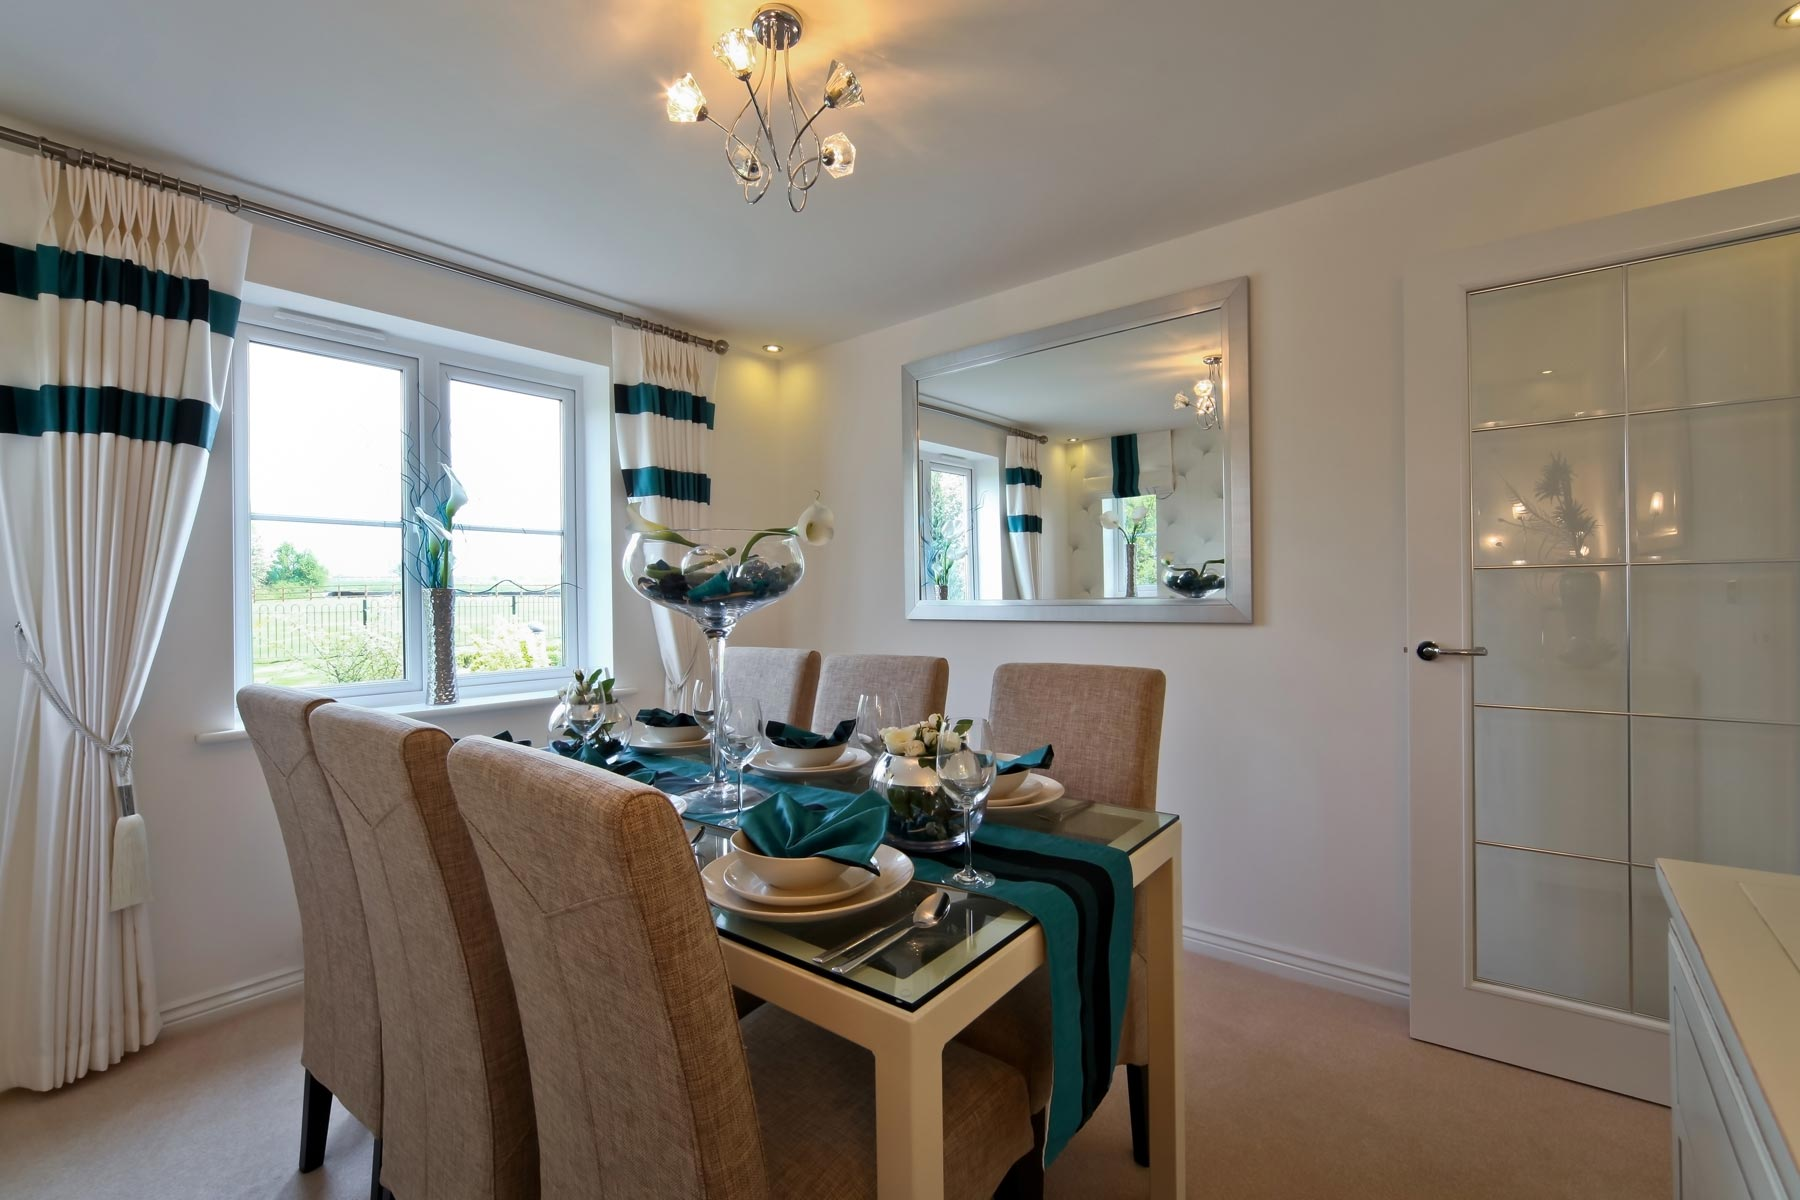 Taylor Wimpey-Interior-The Langdale-4 bedroom new home-21